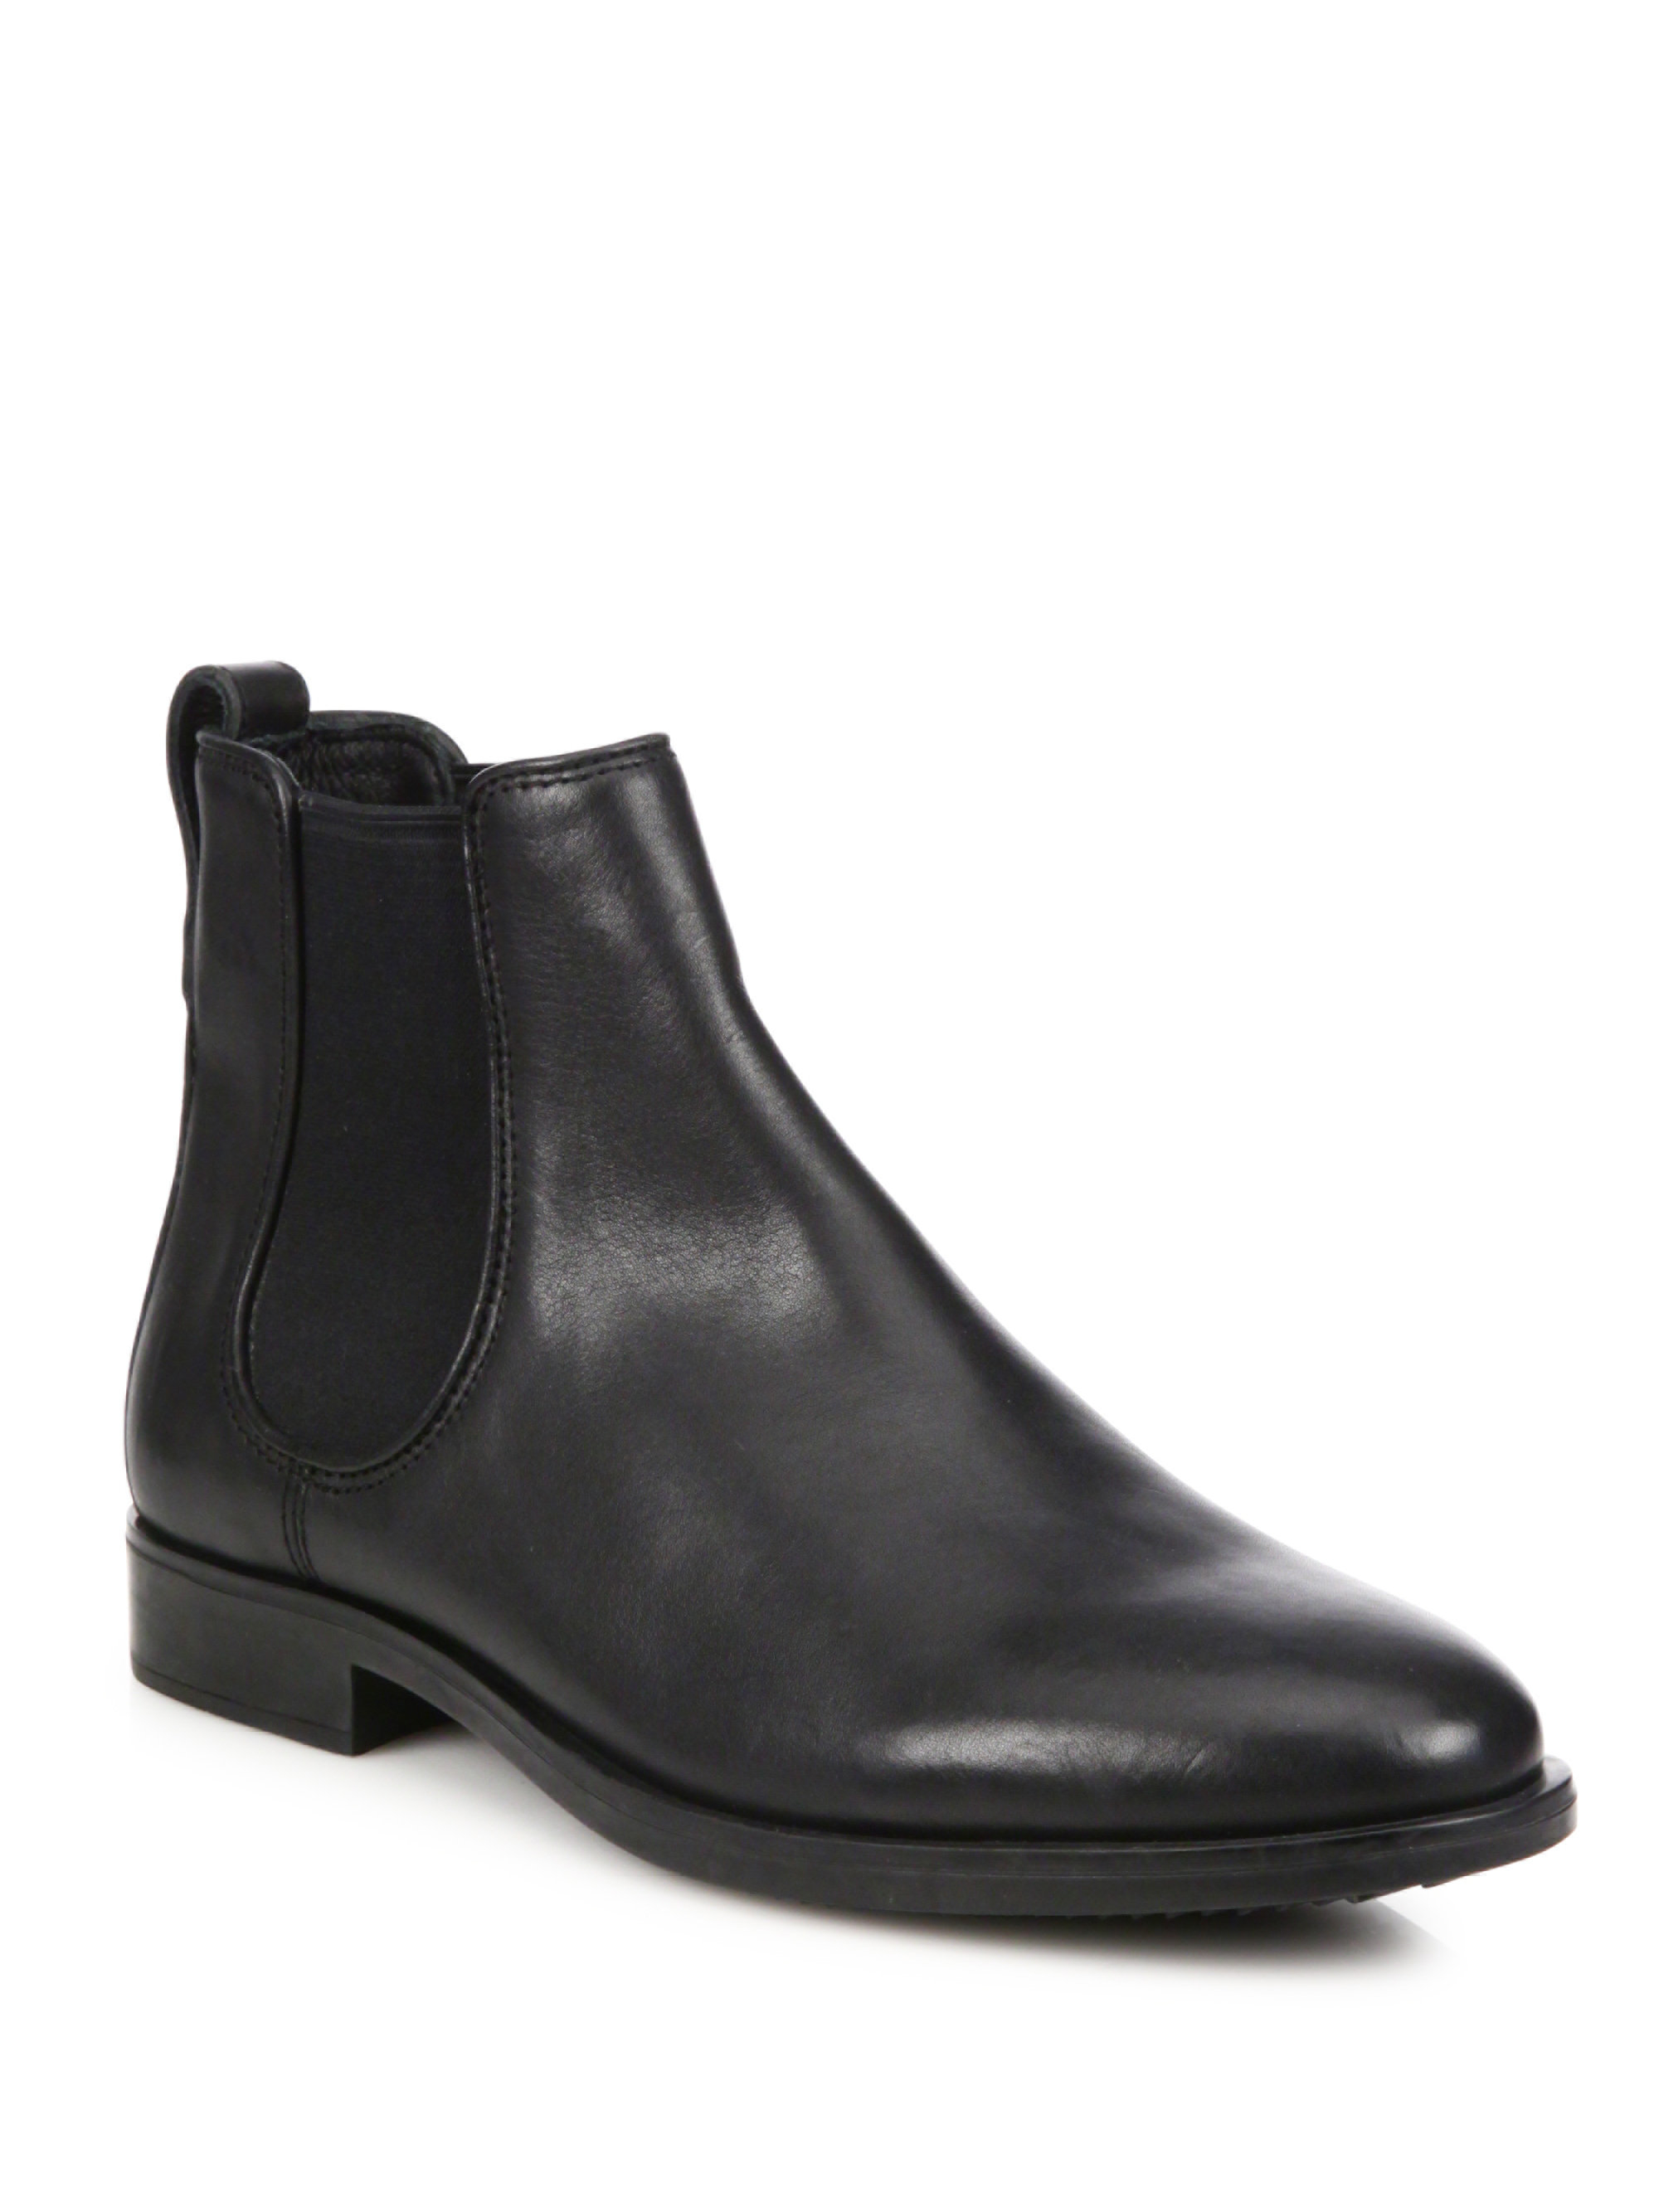 6b34e84a940ac Lyst - COACH Claremont Chelsea Boots in Black for Men